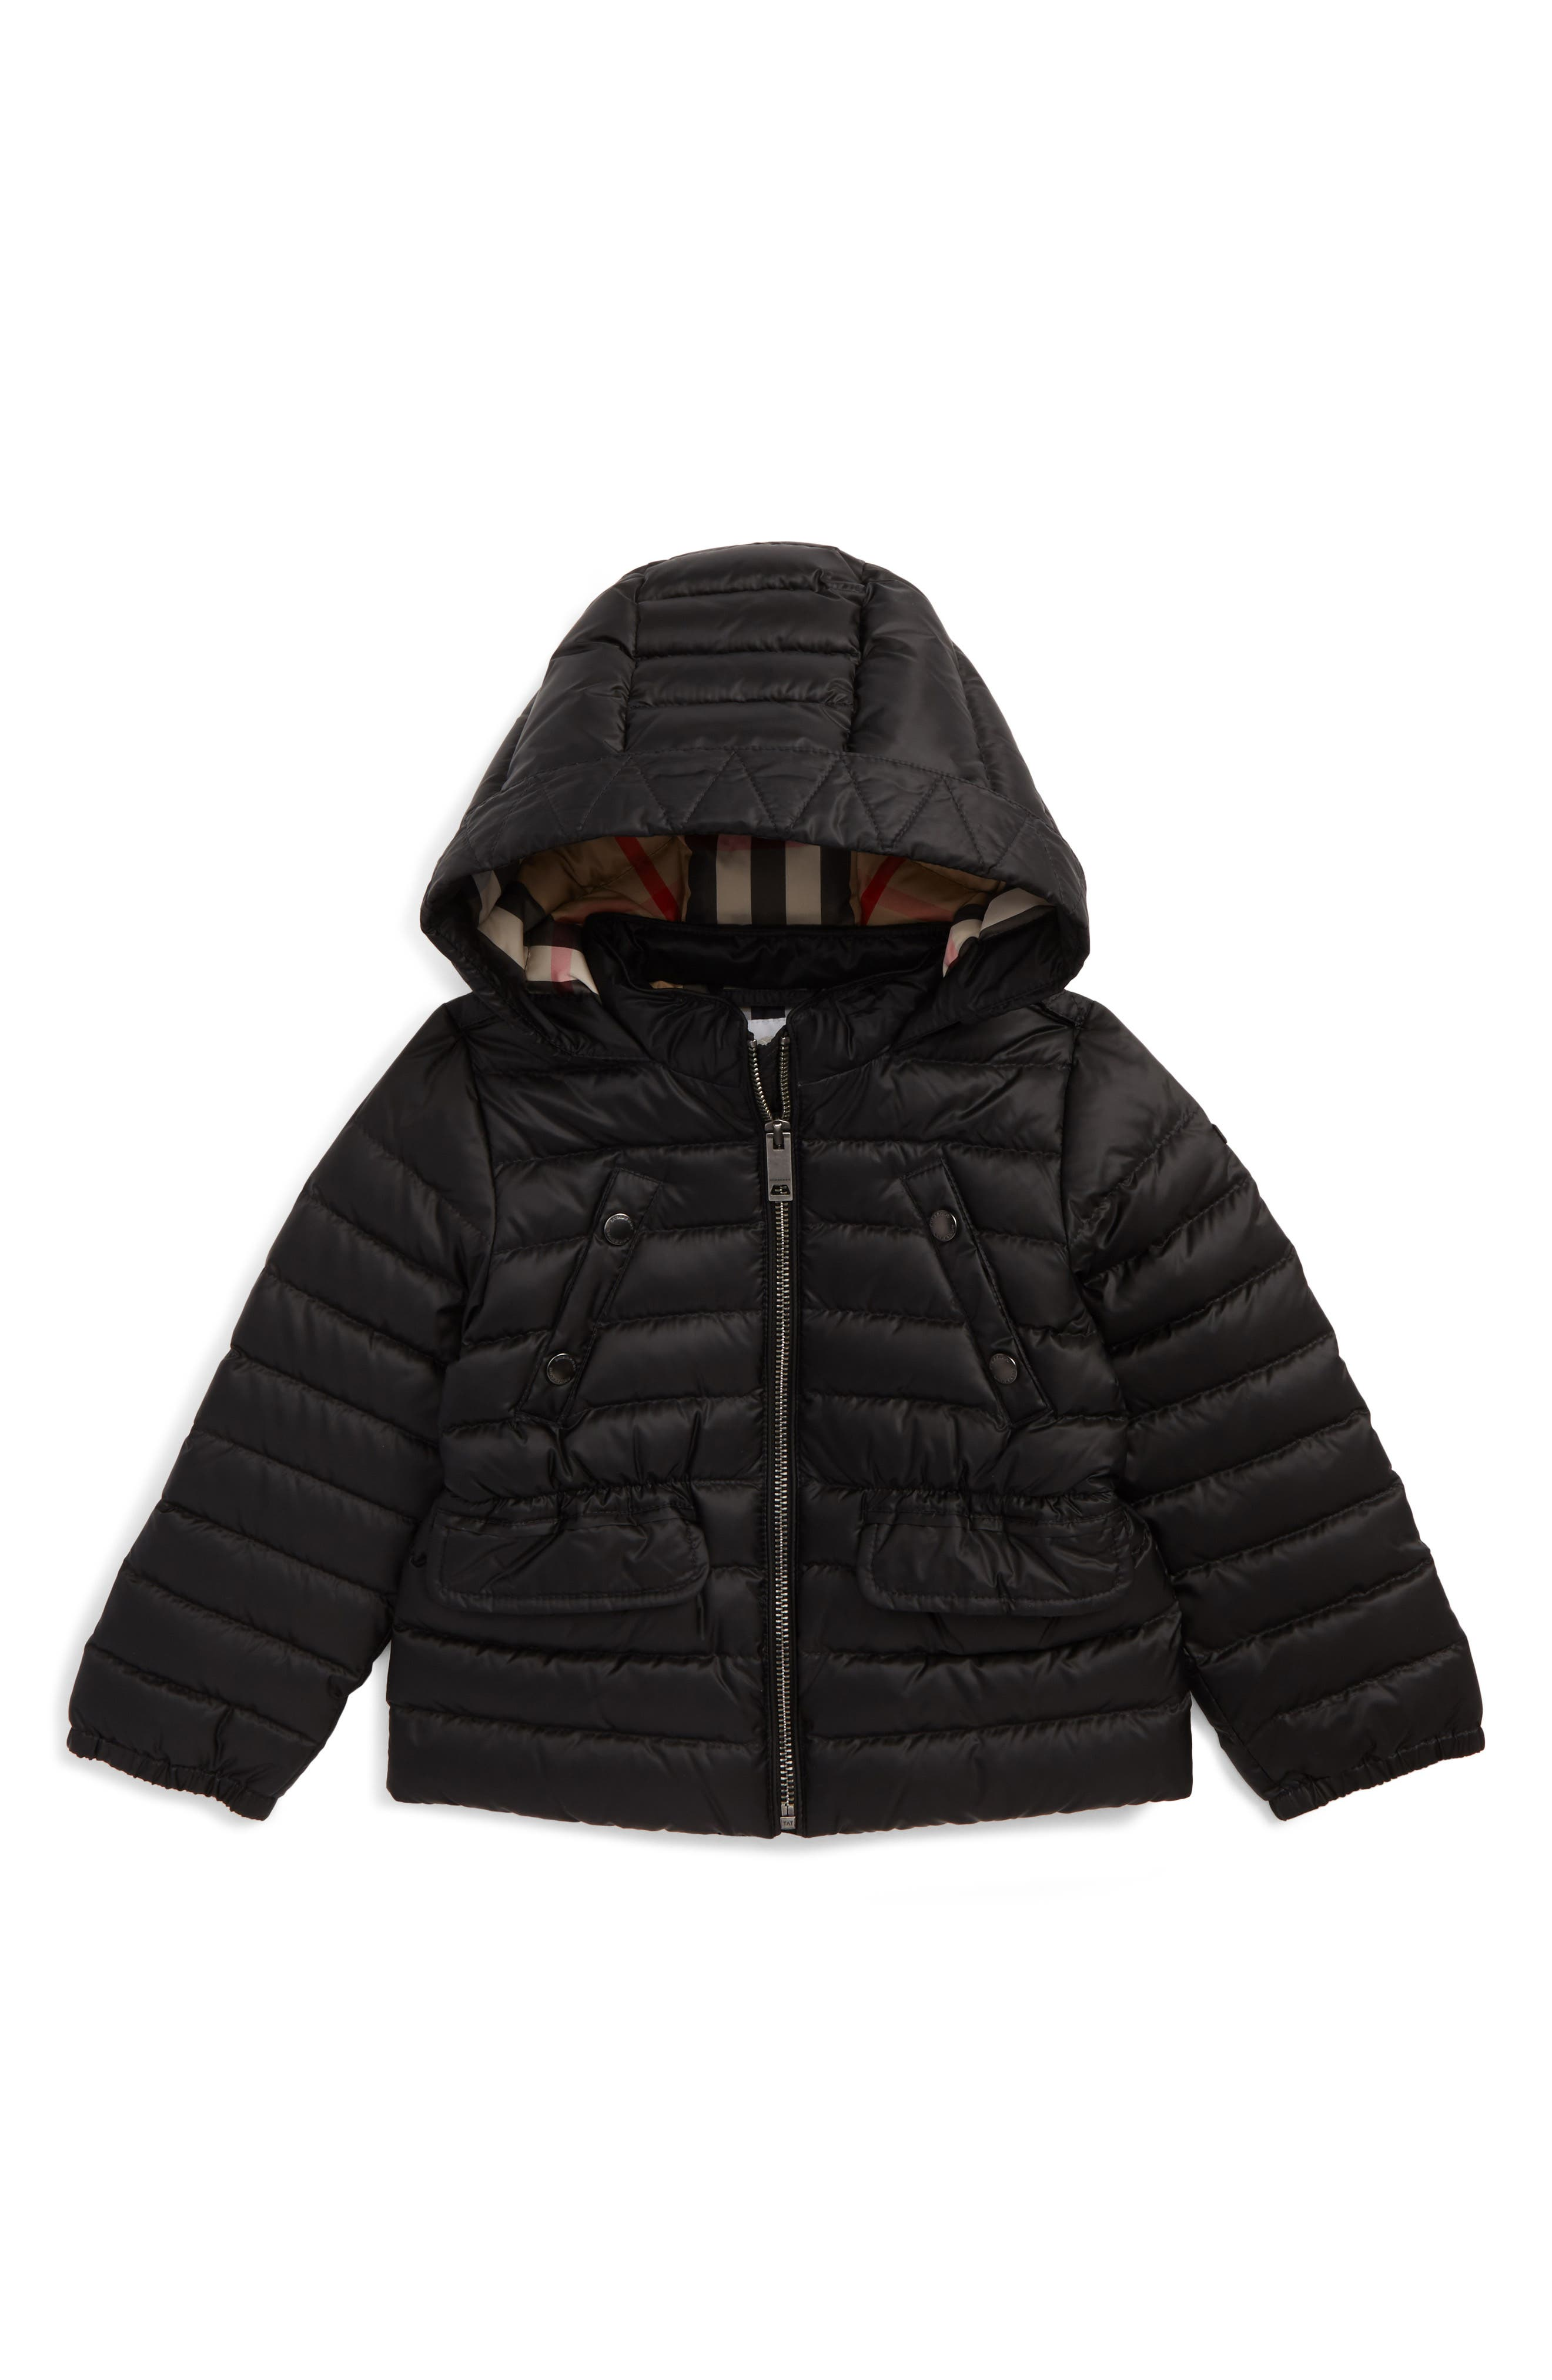 Burberry Mini Bronwyn Quilted Down Jacket (Baby Girls & Toddler Girls)